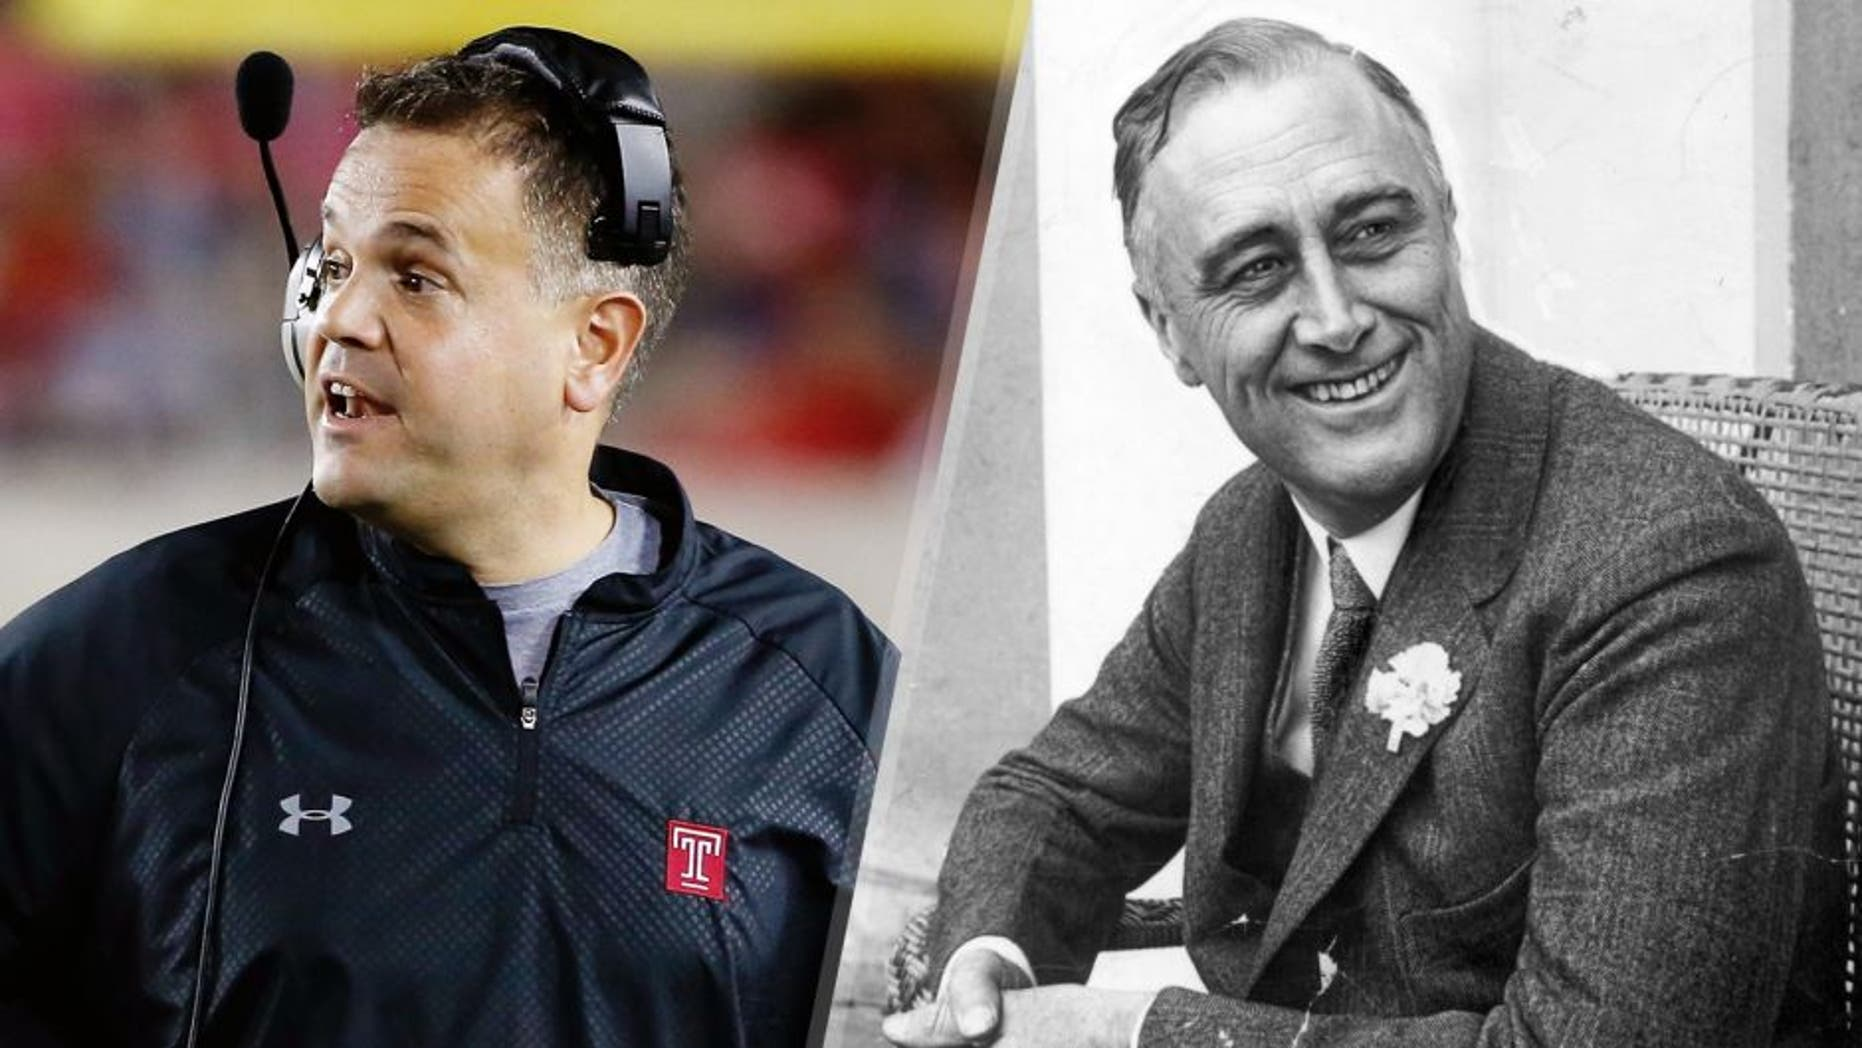 HOUSTON, TX - OCTOBER 17: Head coach Matt Rhule of the Temple Owls walks near the sideline the field in the first half of their game against the Houston Cougars at TDECU Stadium on October 17, 2014 in Houston, Texas. (Photo by Scott Halleran/Getty Images) 1st June 1928: American statesman Franklin Delano Roosevelt (1882 - 1945) smiling when he heard that he was leading the contest for Governor of New York State. He later became the 32nd President of the USA. (Photo by Hulton Archive/Getty Images)